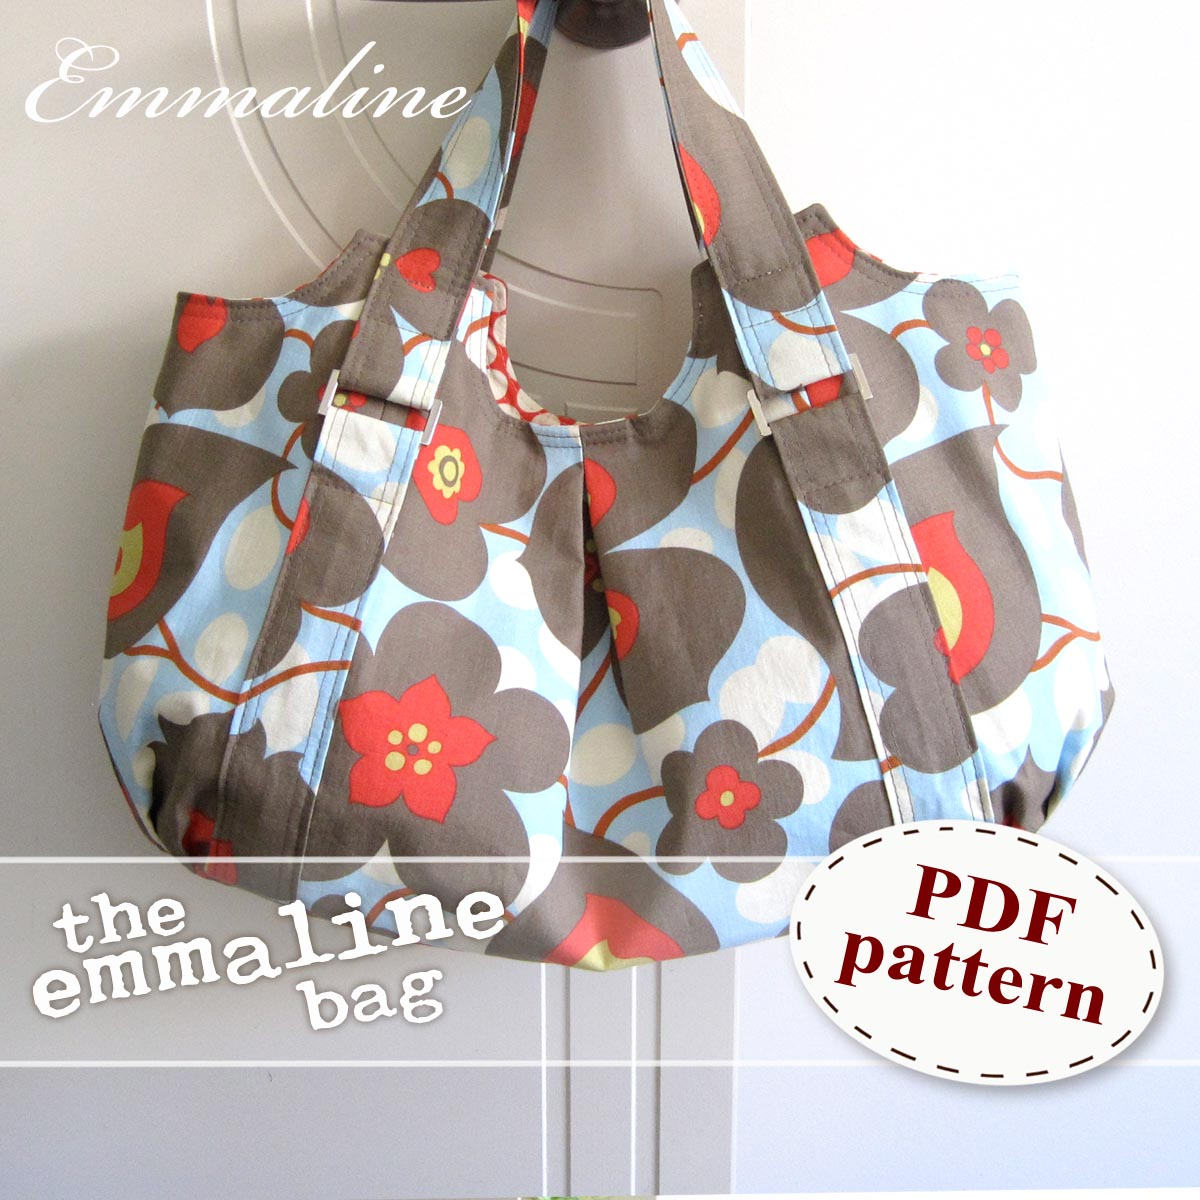 Emmaline Bags: Sewing Patterns and Purse Supplies: The Emmaline Bag ...